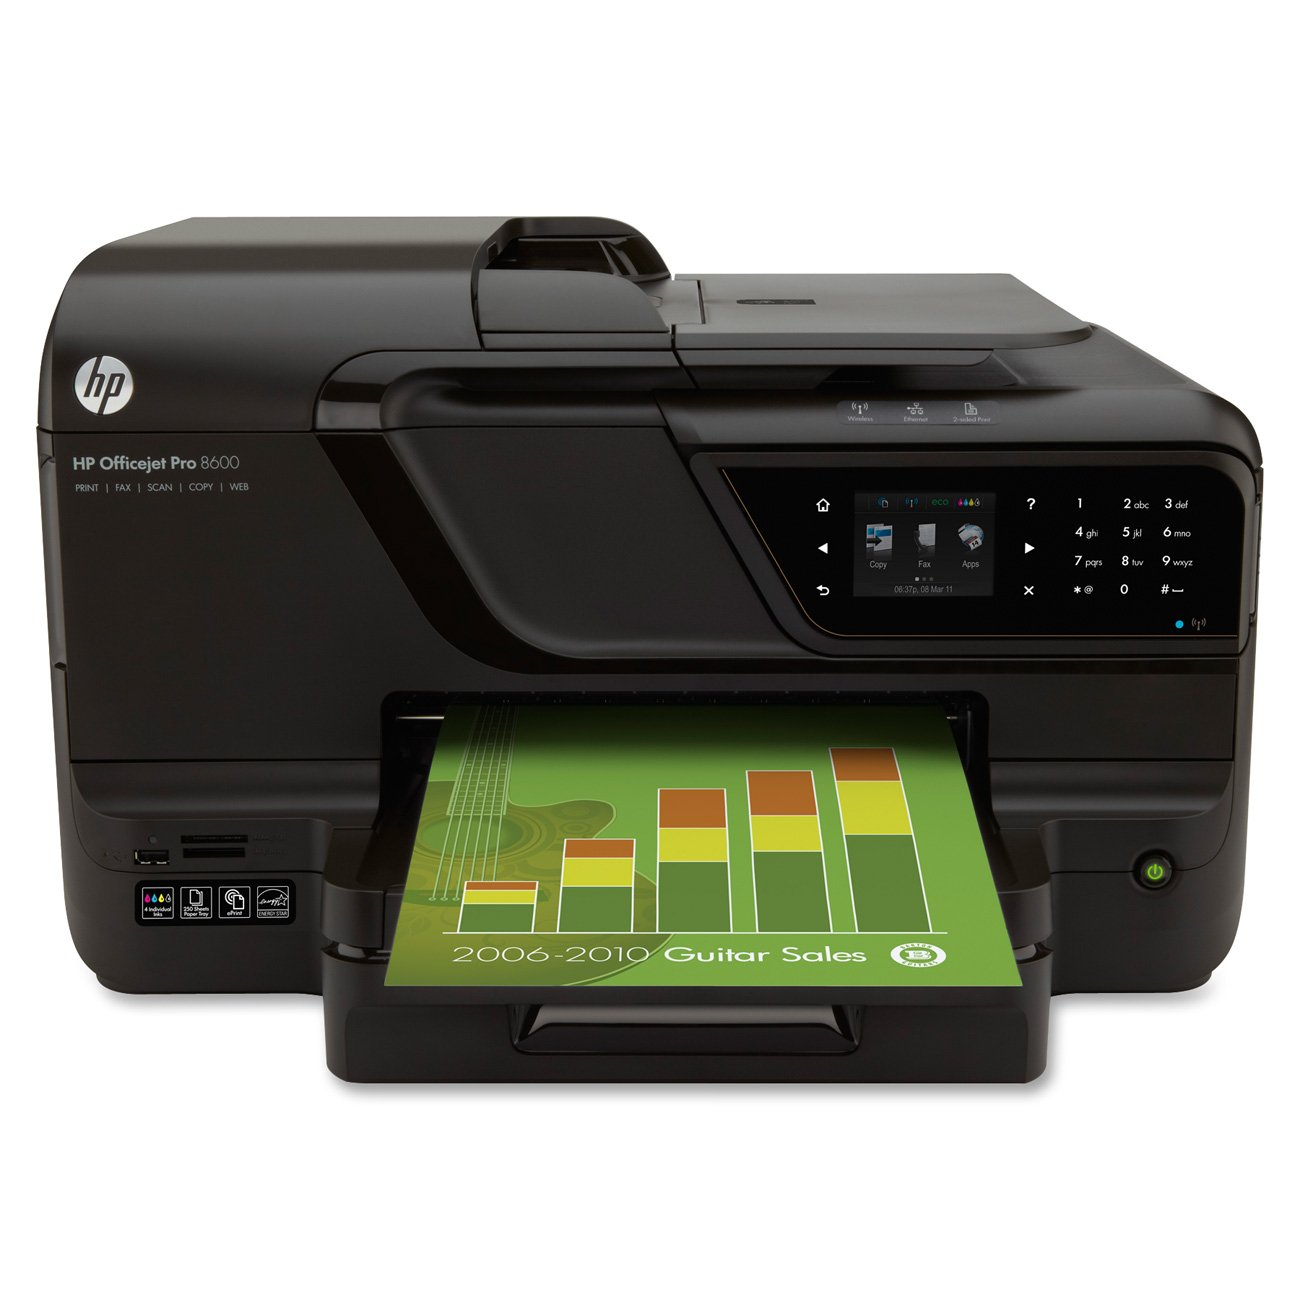 Amazon HP Officejet Pro 8600 E All In On Wireless Color Printer With Scanner Copier Fax Electronics